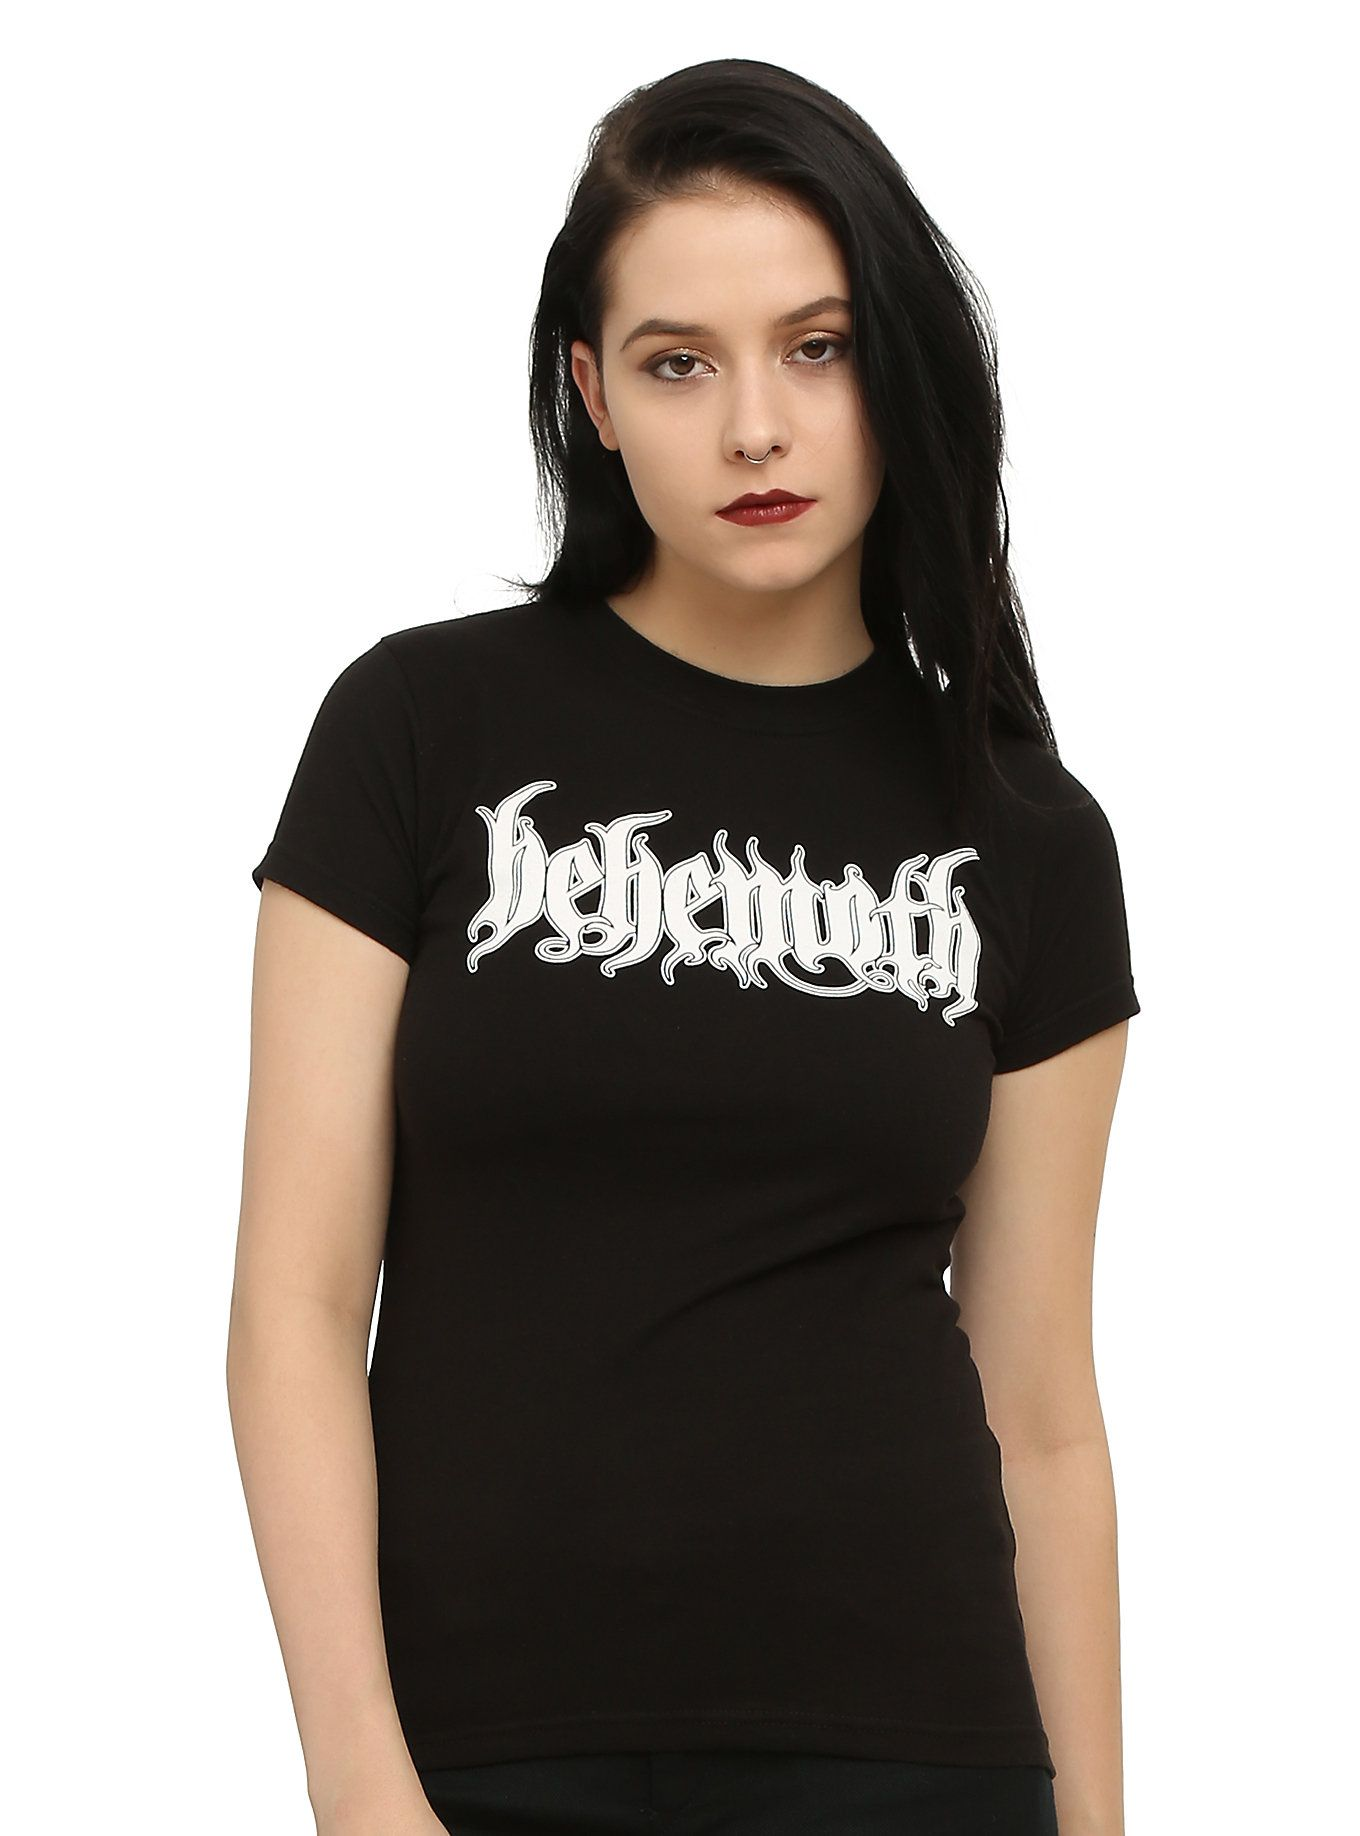 Black t shirt on girl -  P Fitted Black Tee With Basic White Behemoth Logo Design On Front